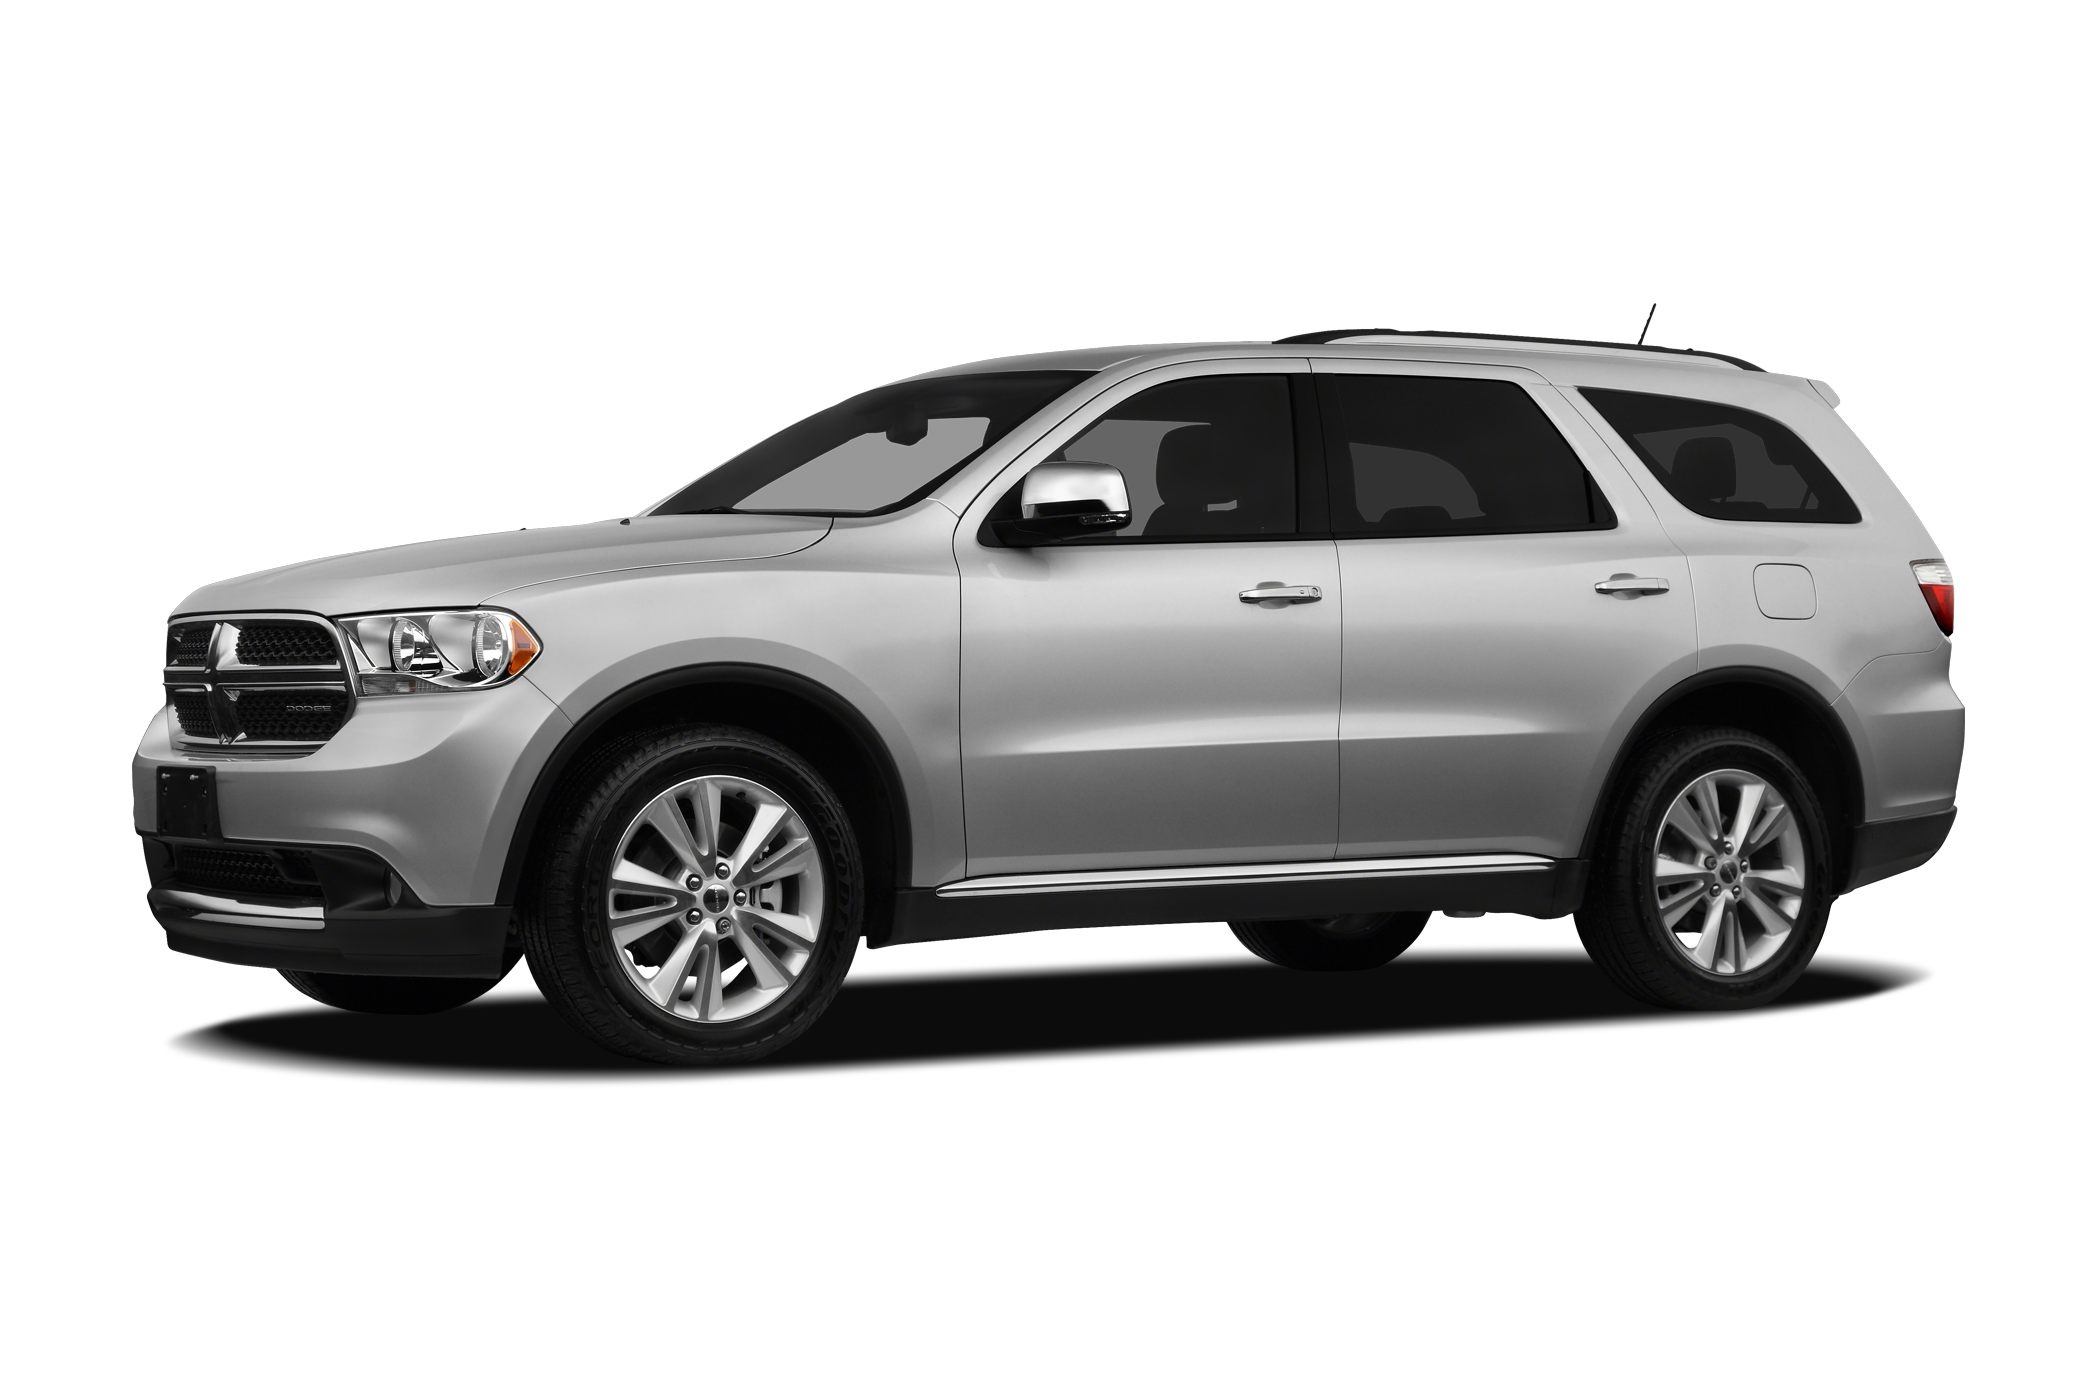 2011 Dodge Durango Crew SUV for sale in Gaithersburg for $24,888 with 51,711 miles